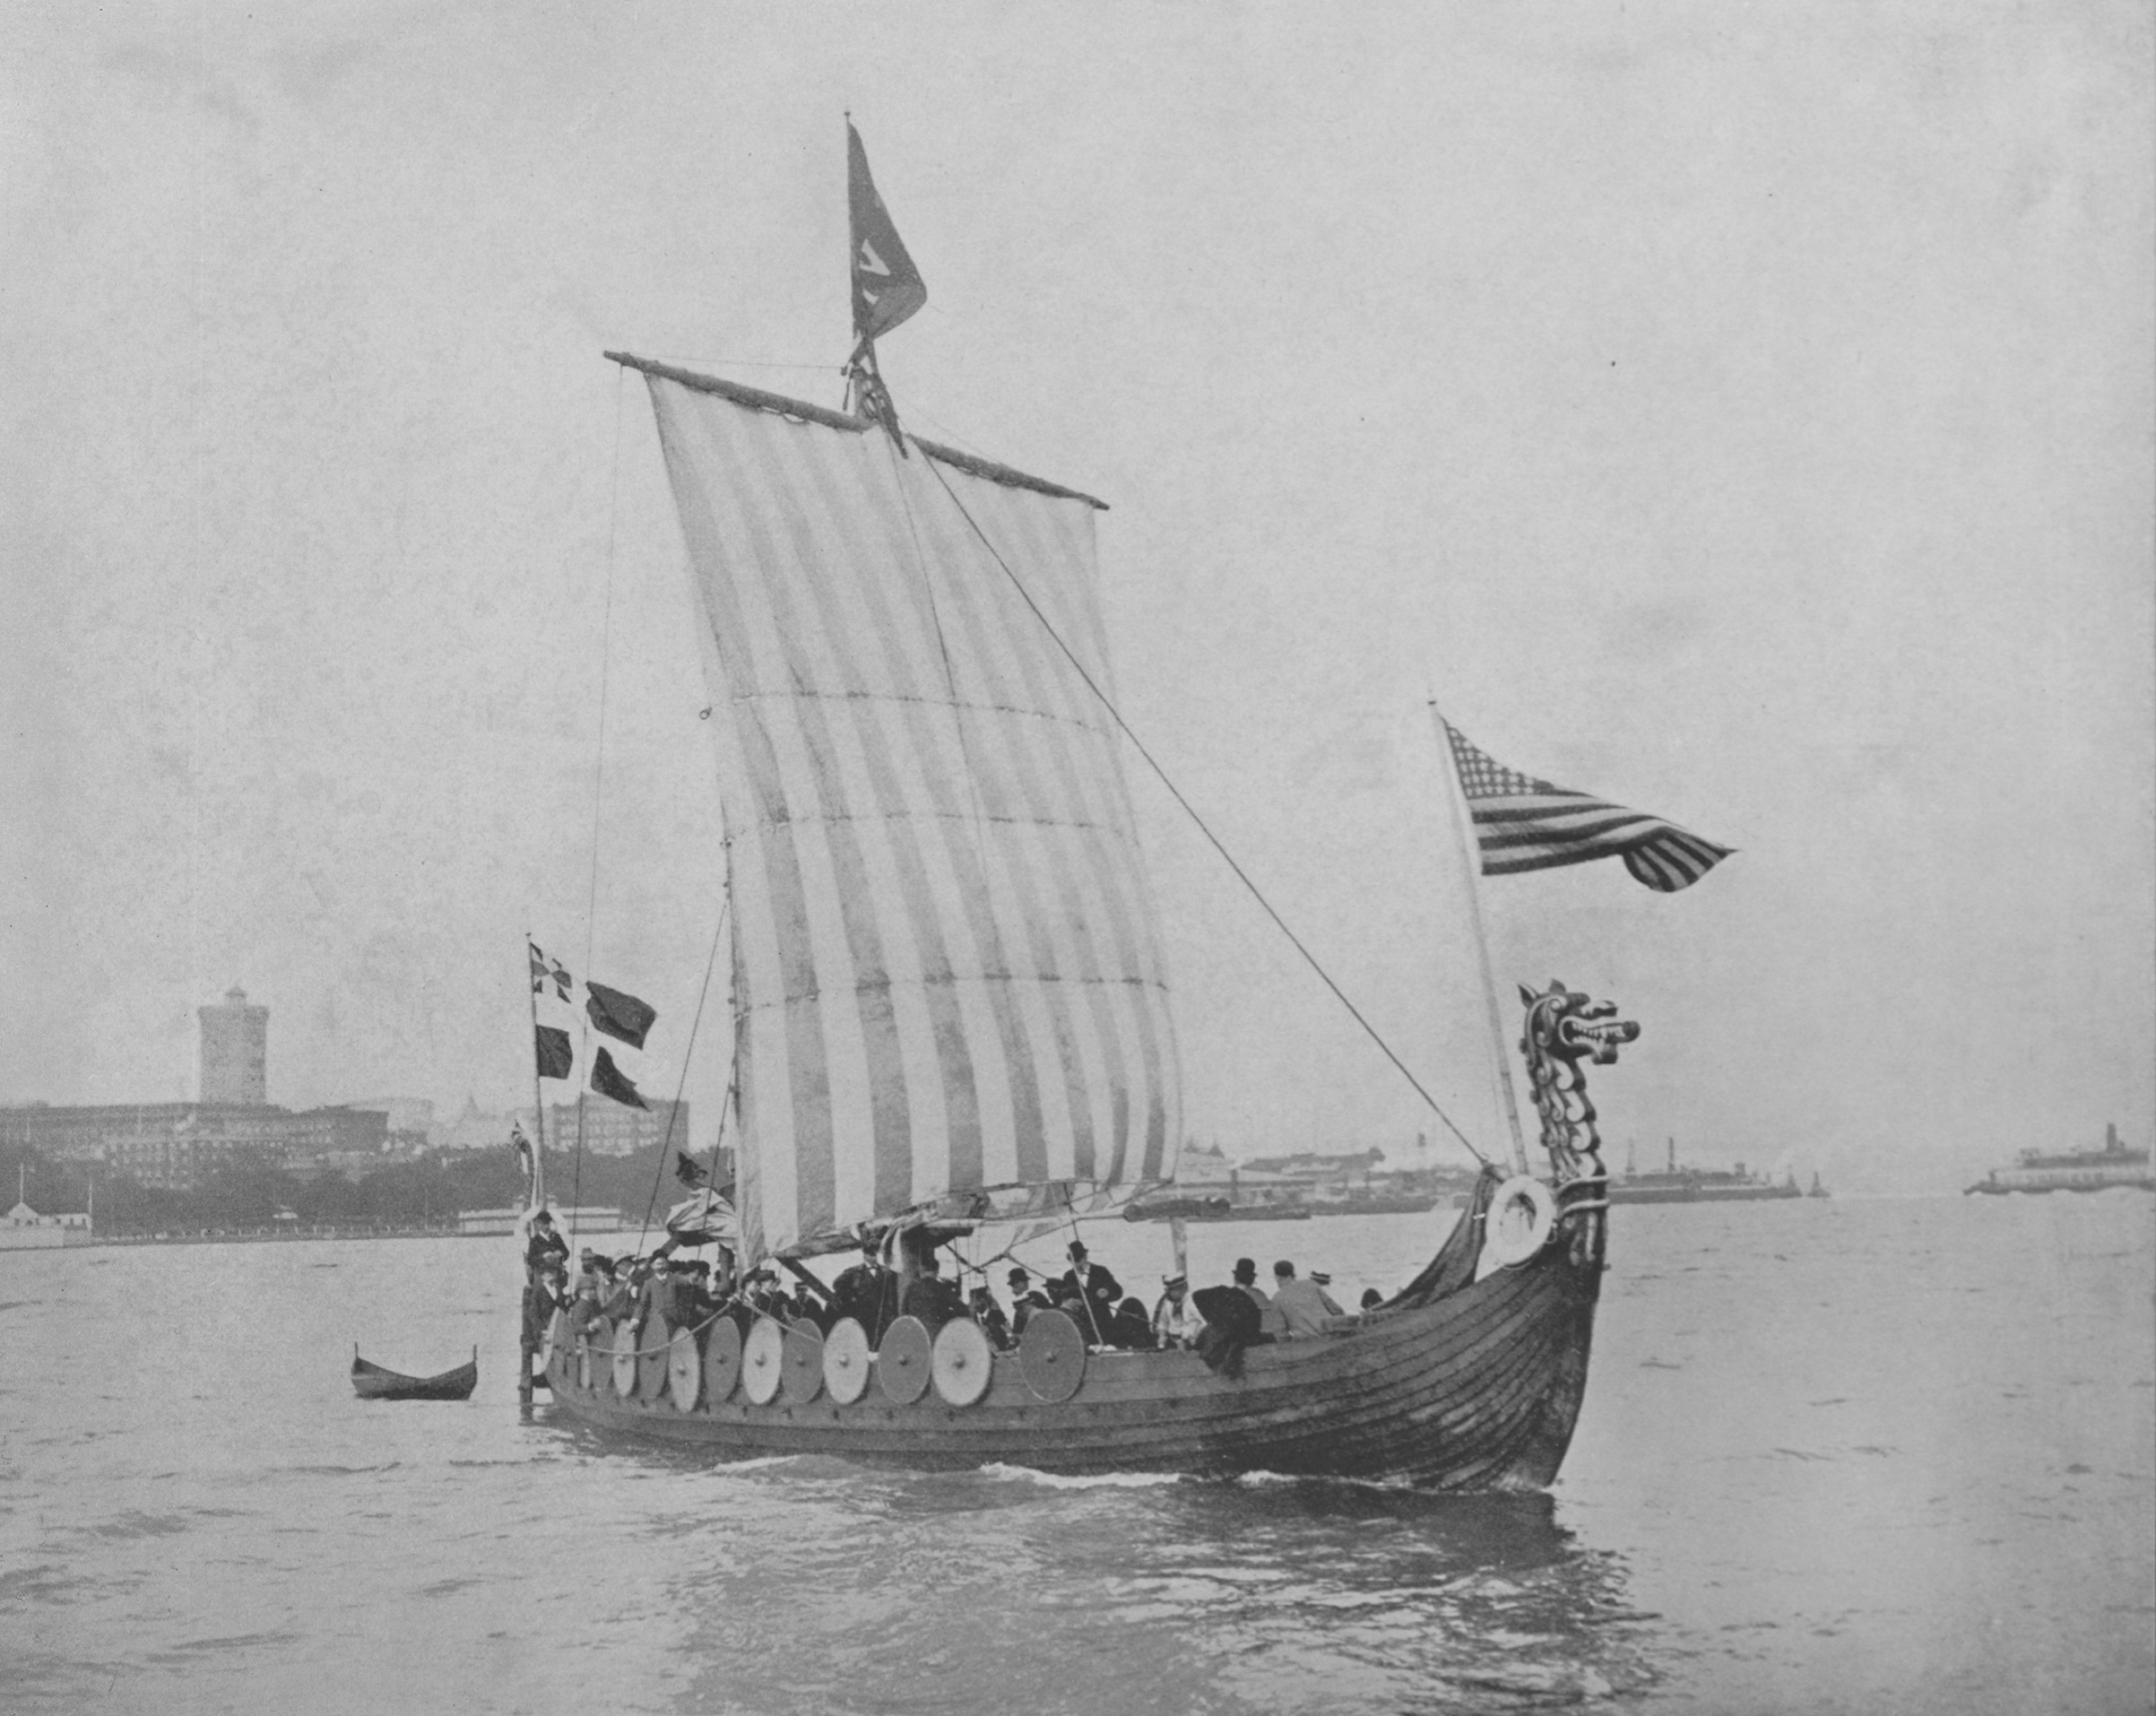 The Viking ship that sailed from Norway to  the World's Columbian Exposition (World's Fair) in 1893.